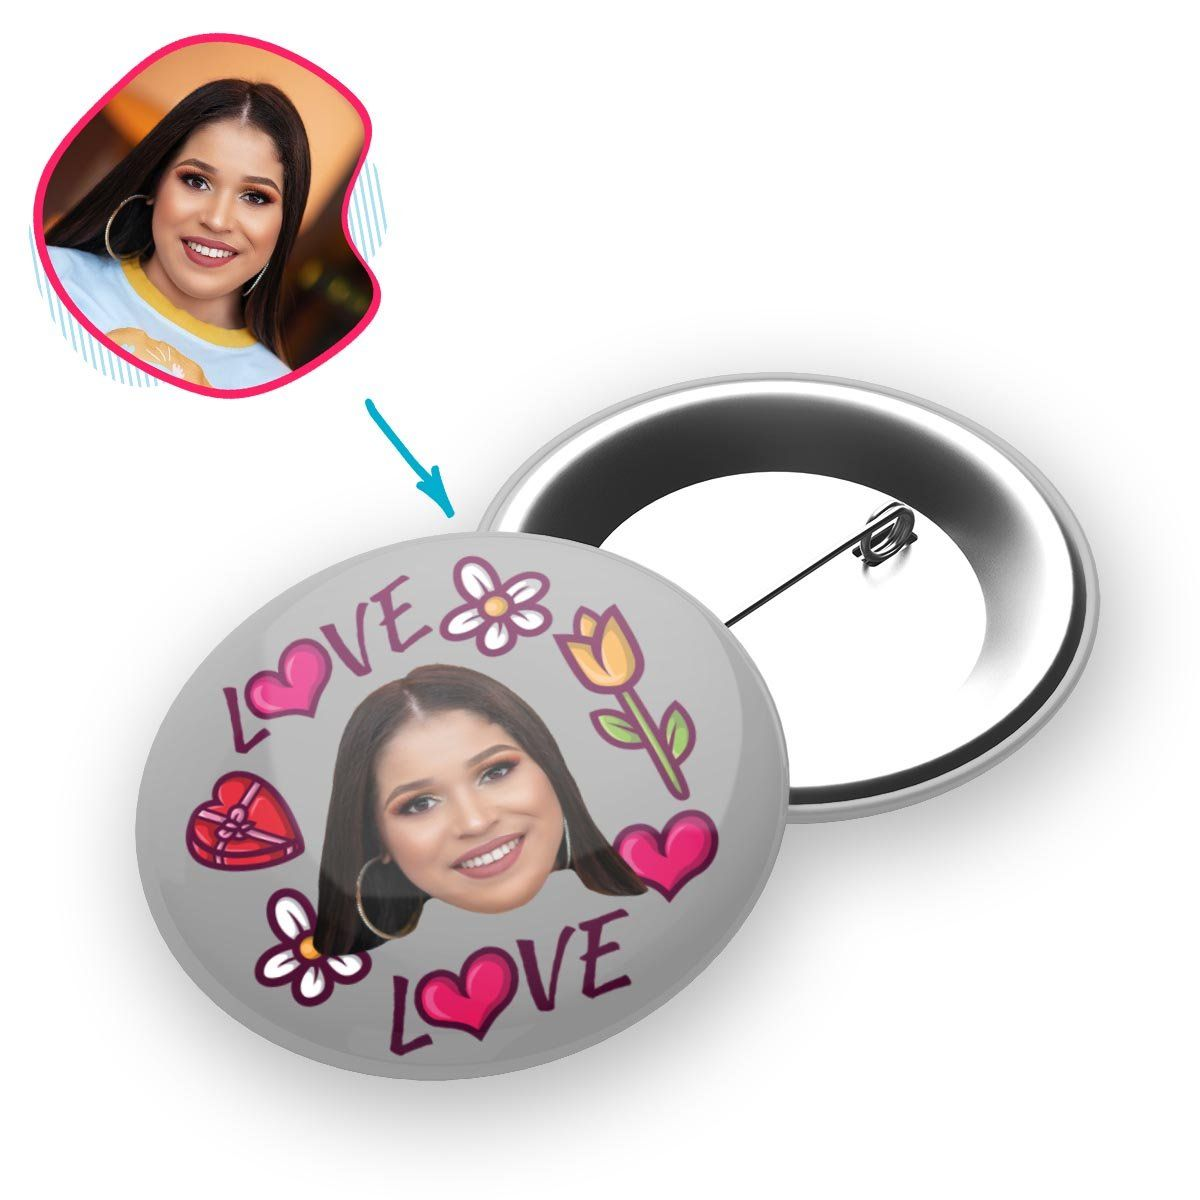 grey Hearts and Flowers pin personalized with photo of face printed on it